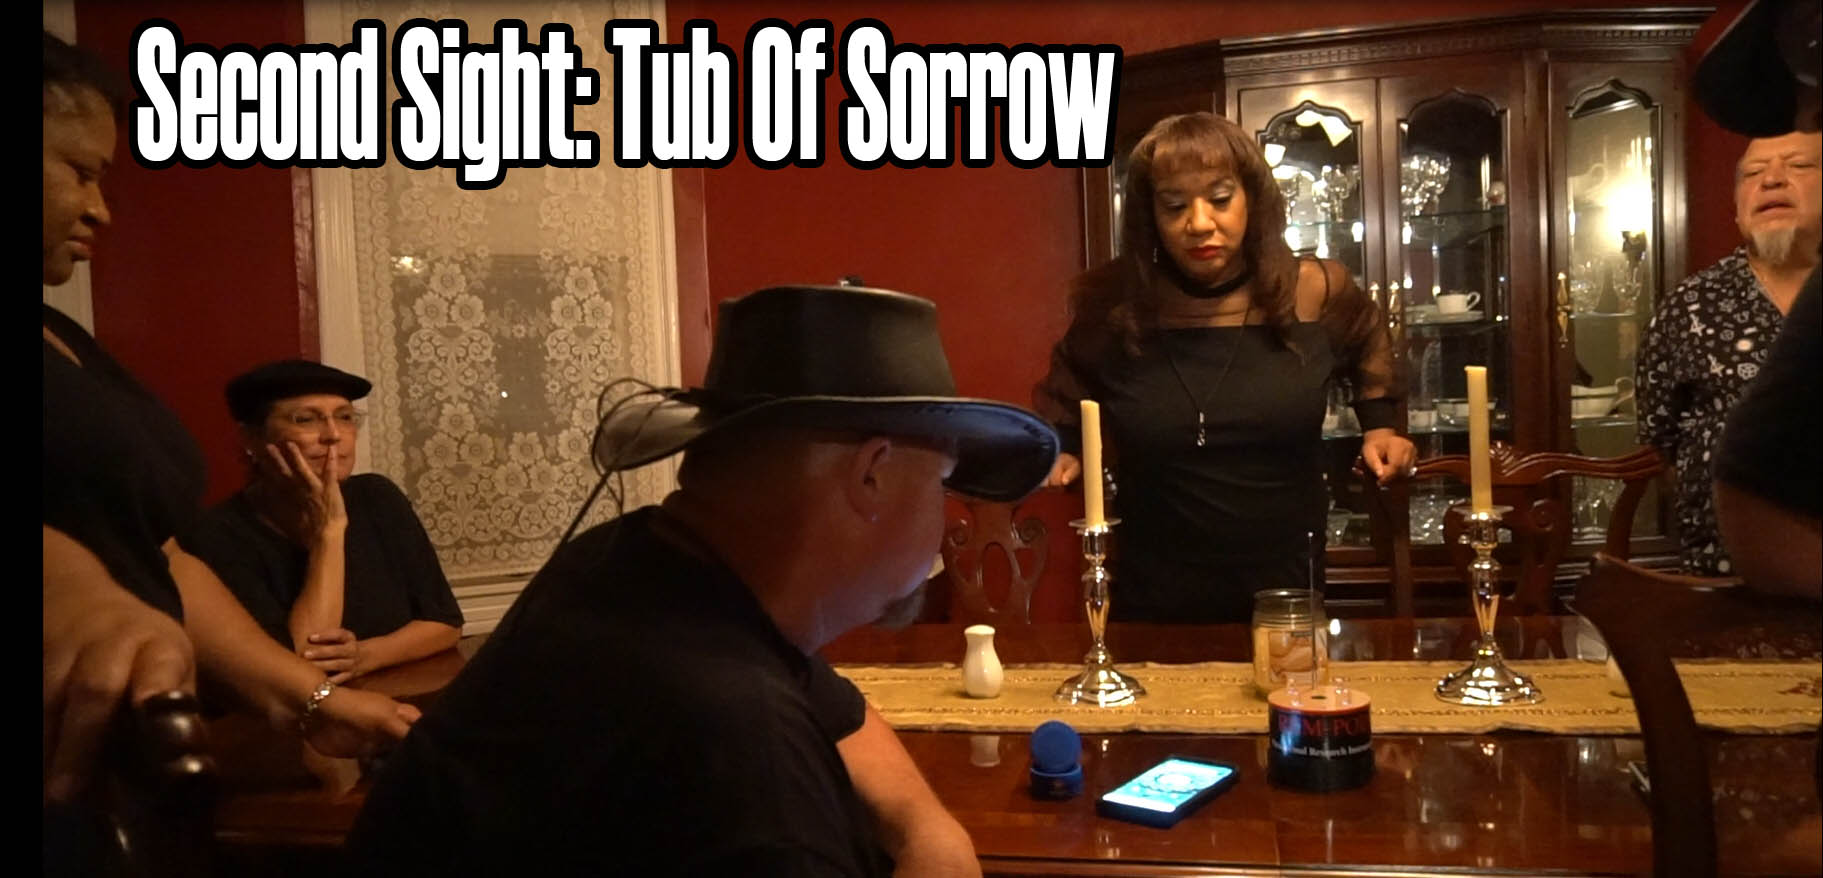 Second Sight TV Launches a New Paranormal TV Series